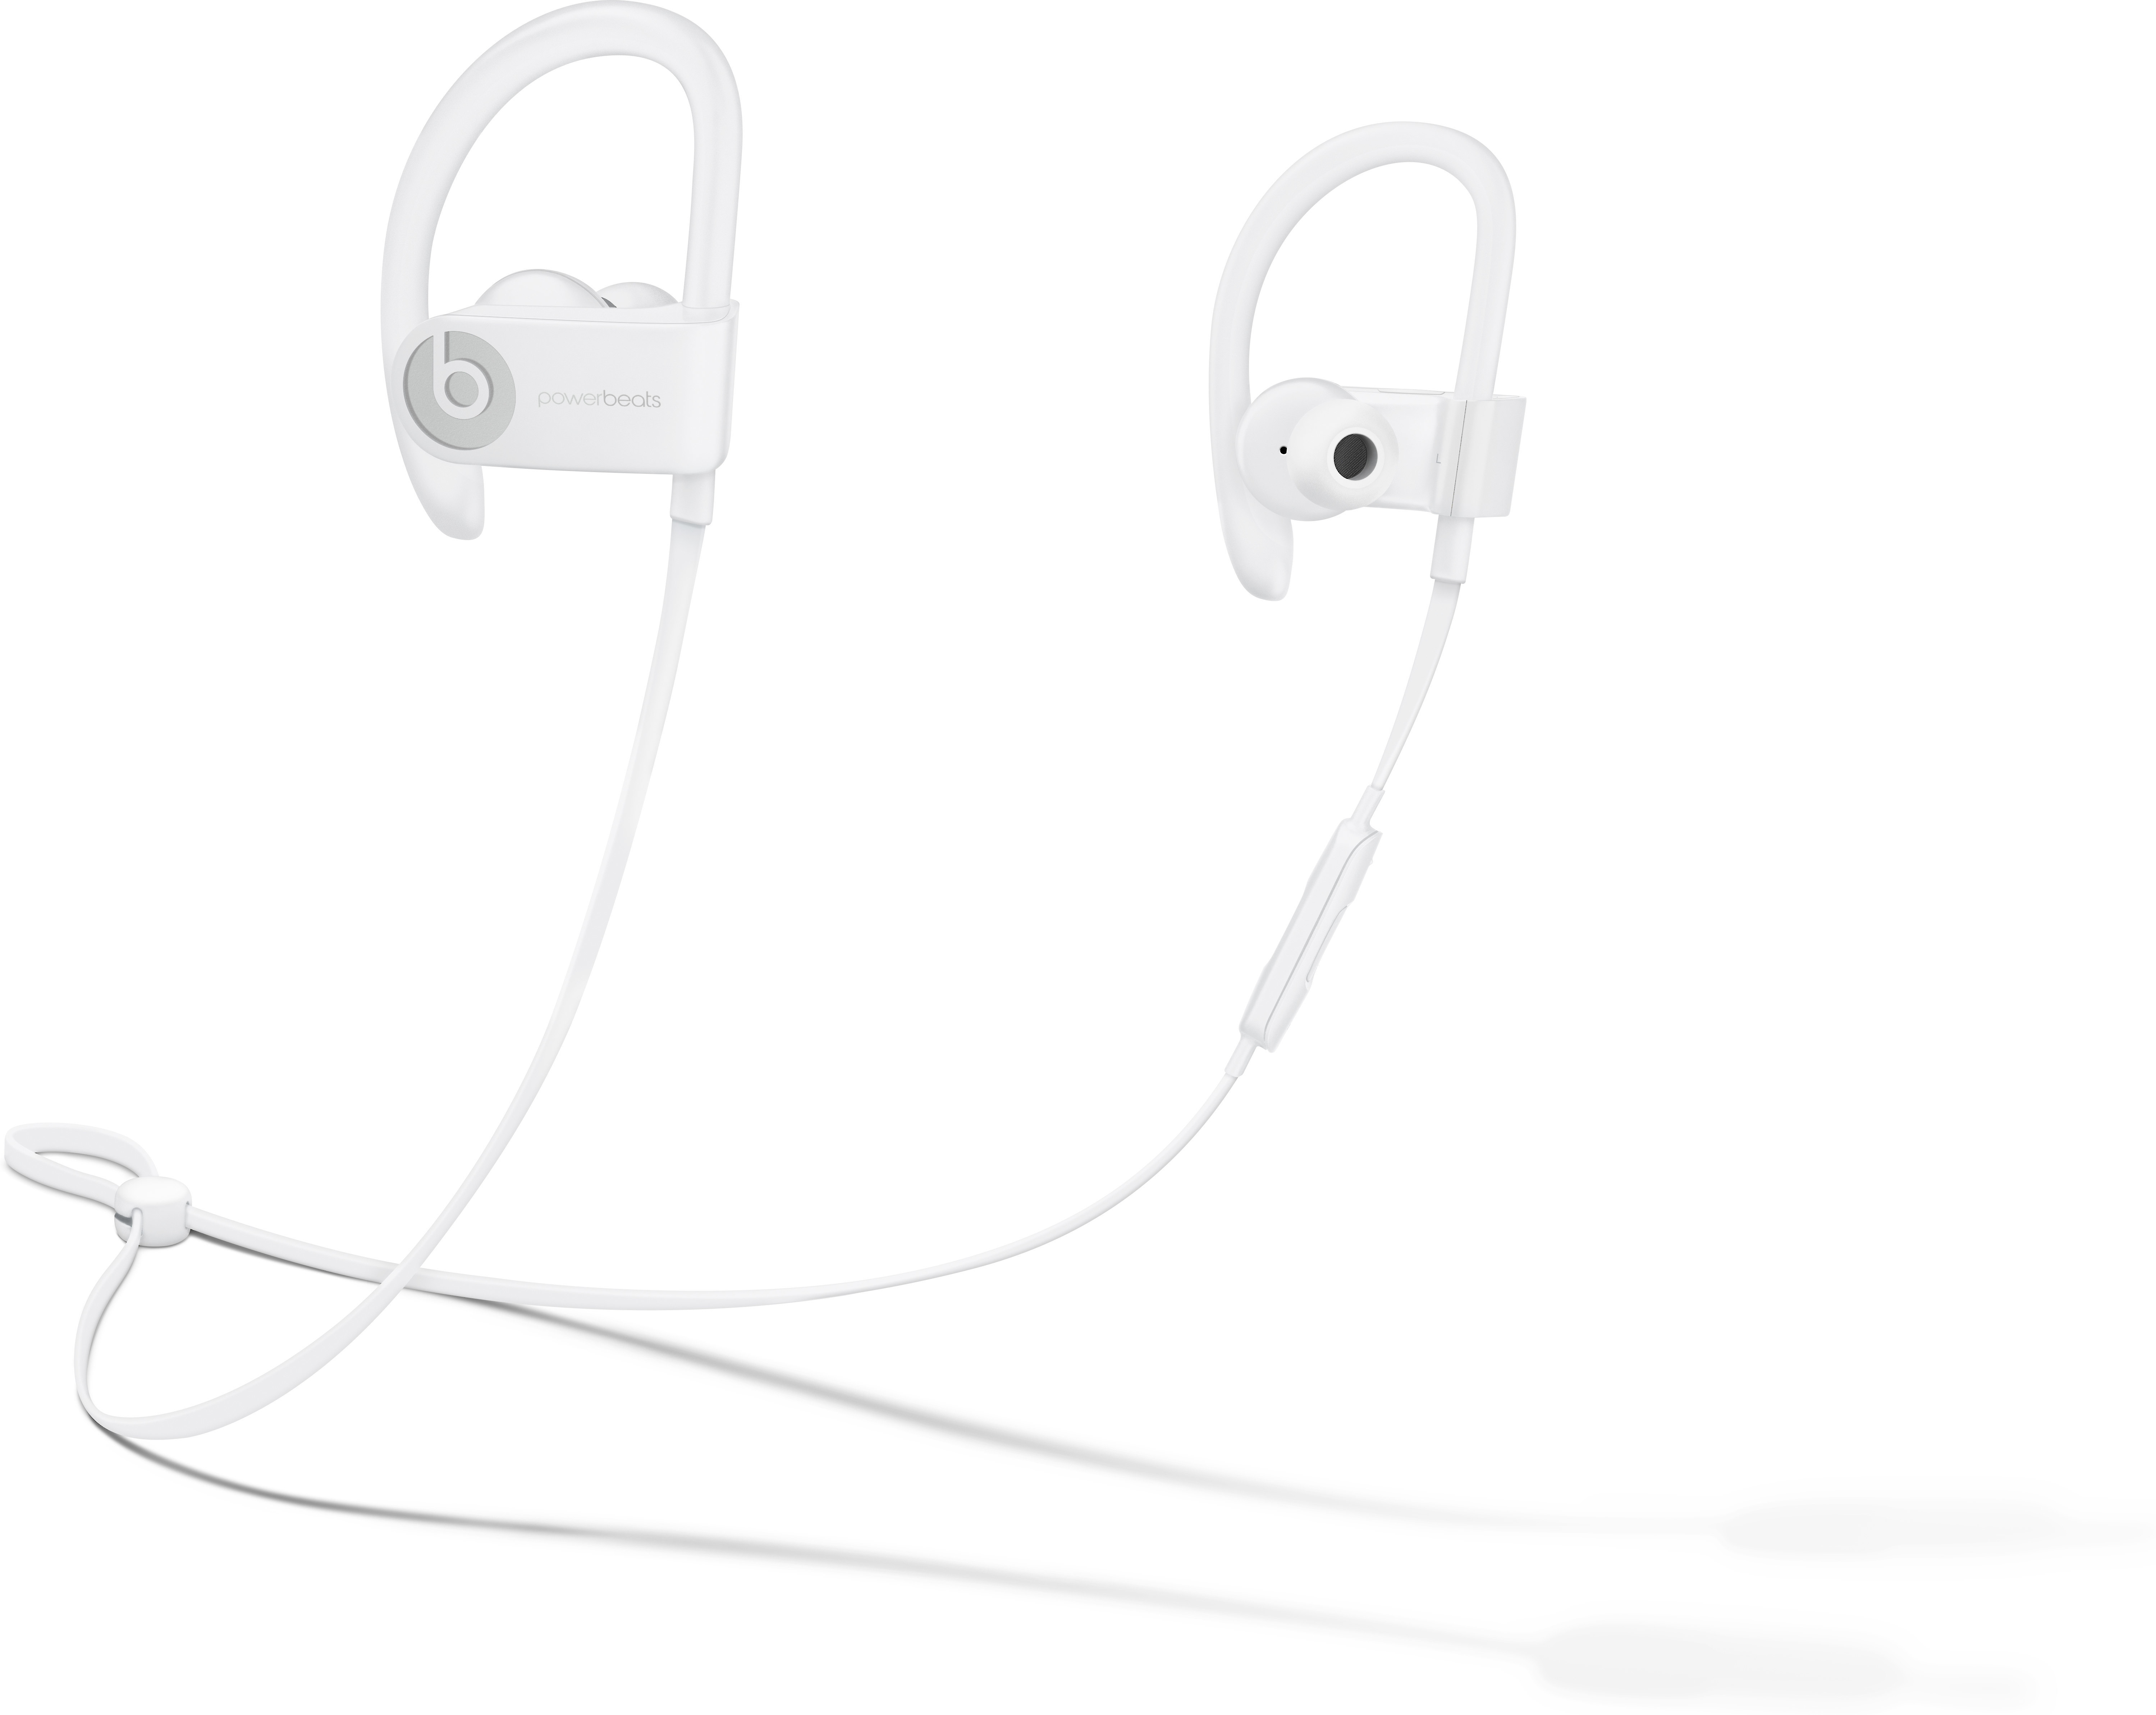 Beats By Dr Dre Powerbeats3 Wireless White In Ear Bluetooth Sport Headphones With Apple W1 Chip At Crutchfield